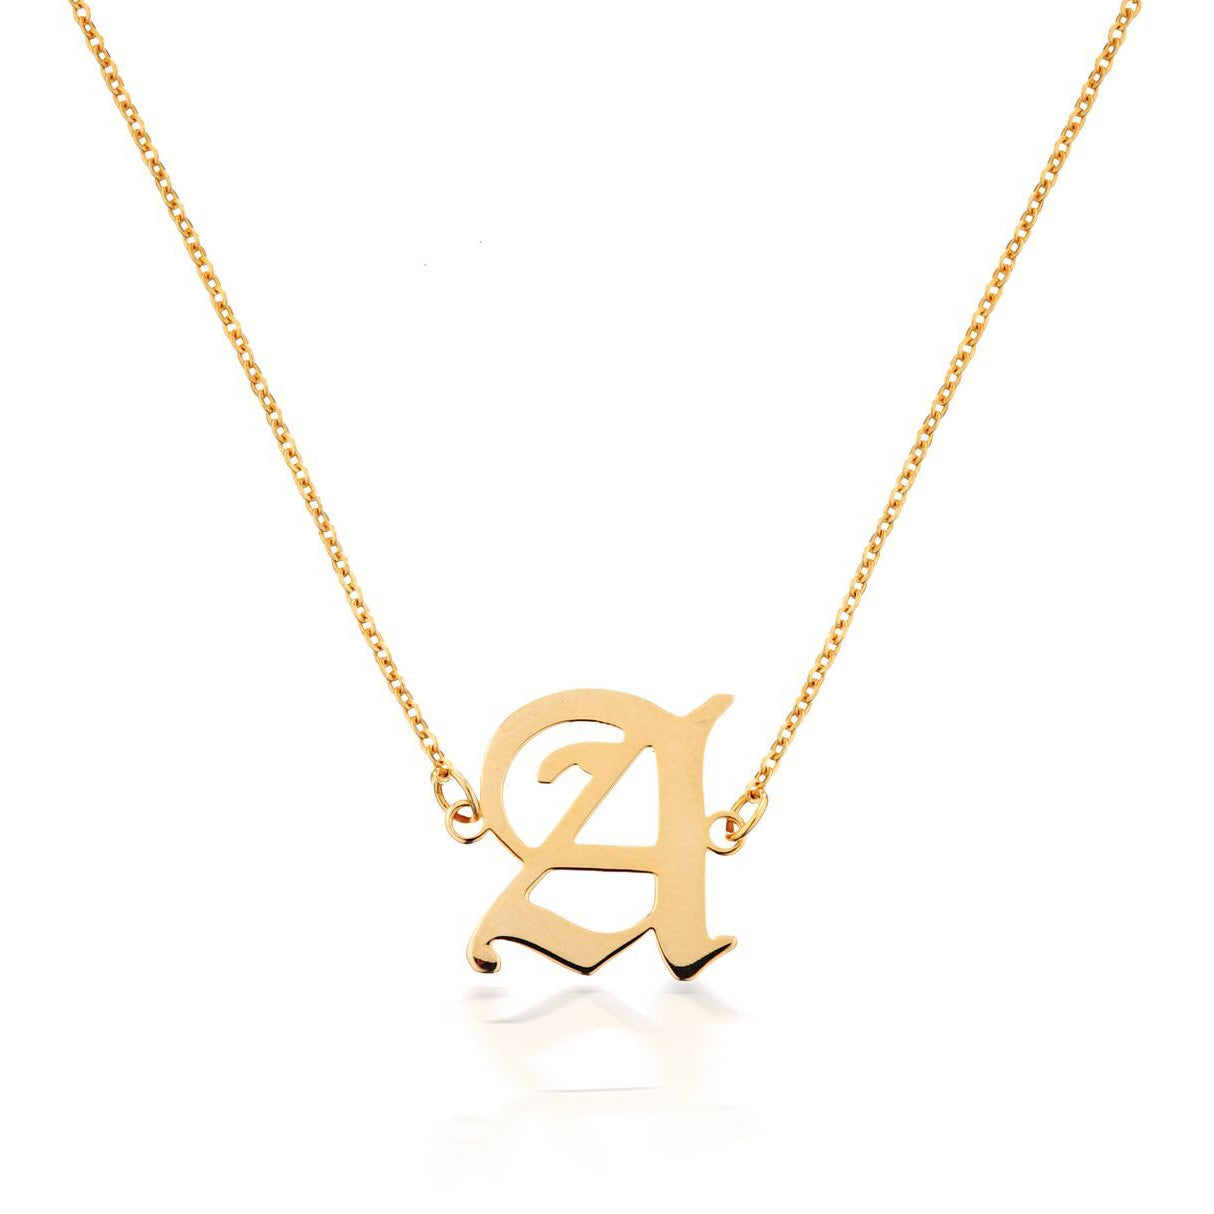 MINI GOTHIC INITIAL NECKLACE